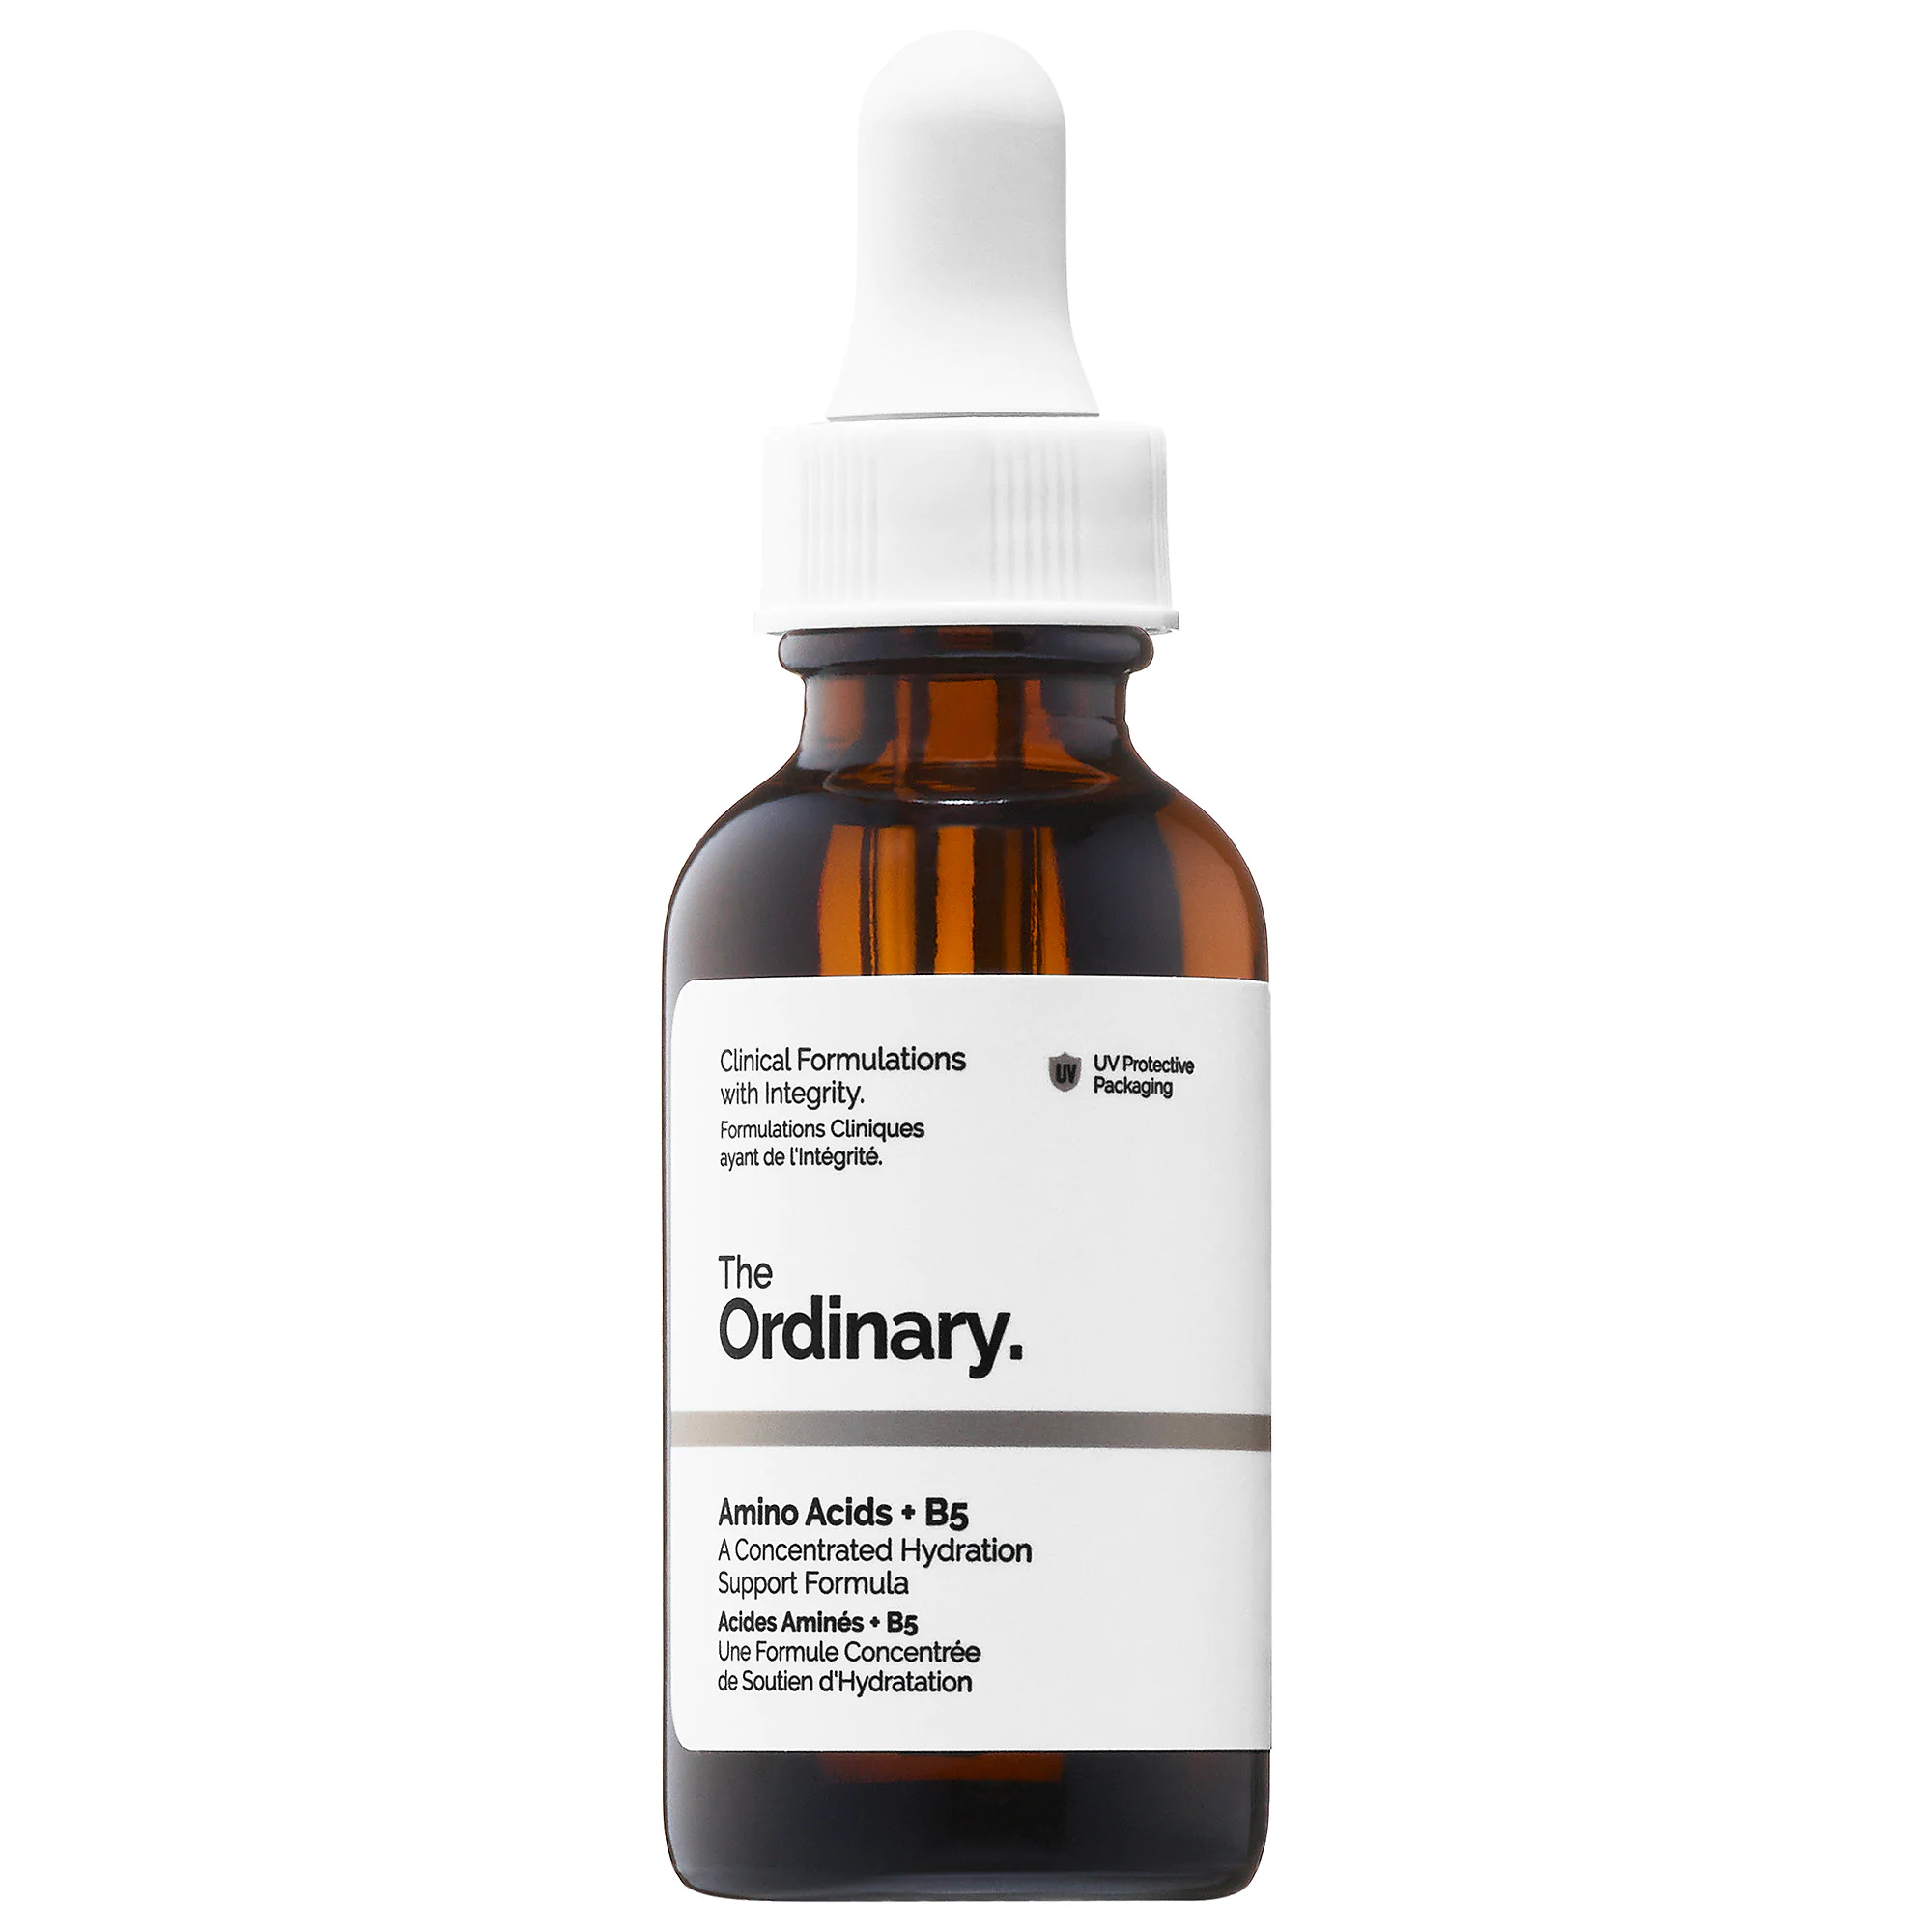 The Ordinary-Amino Acids + B5